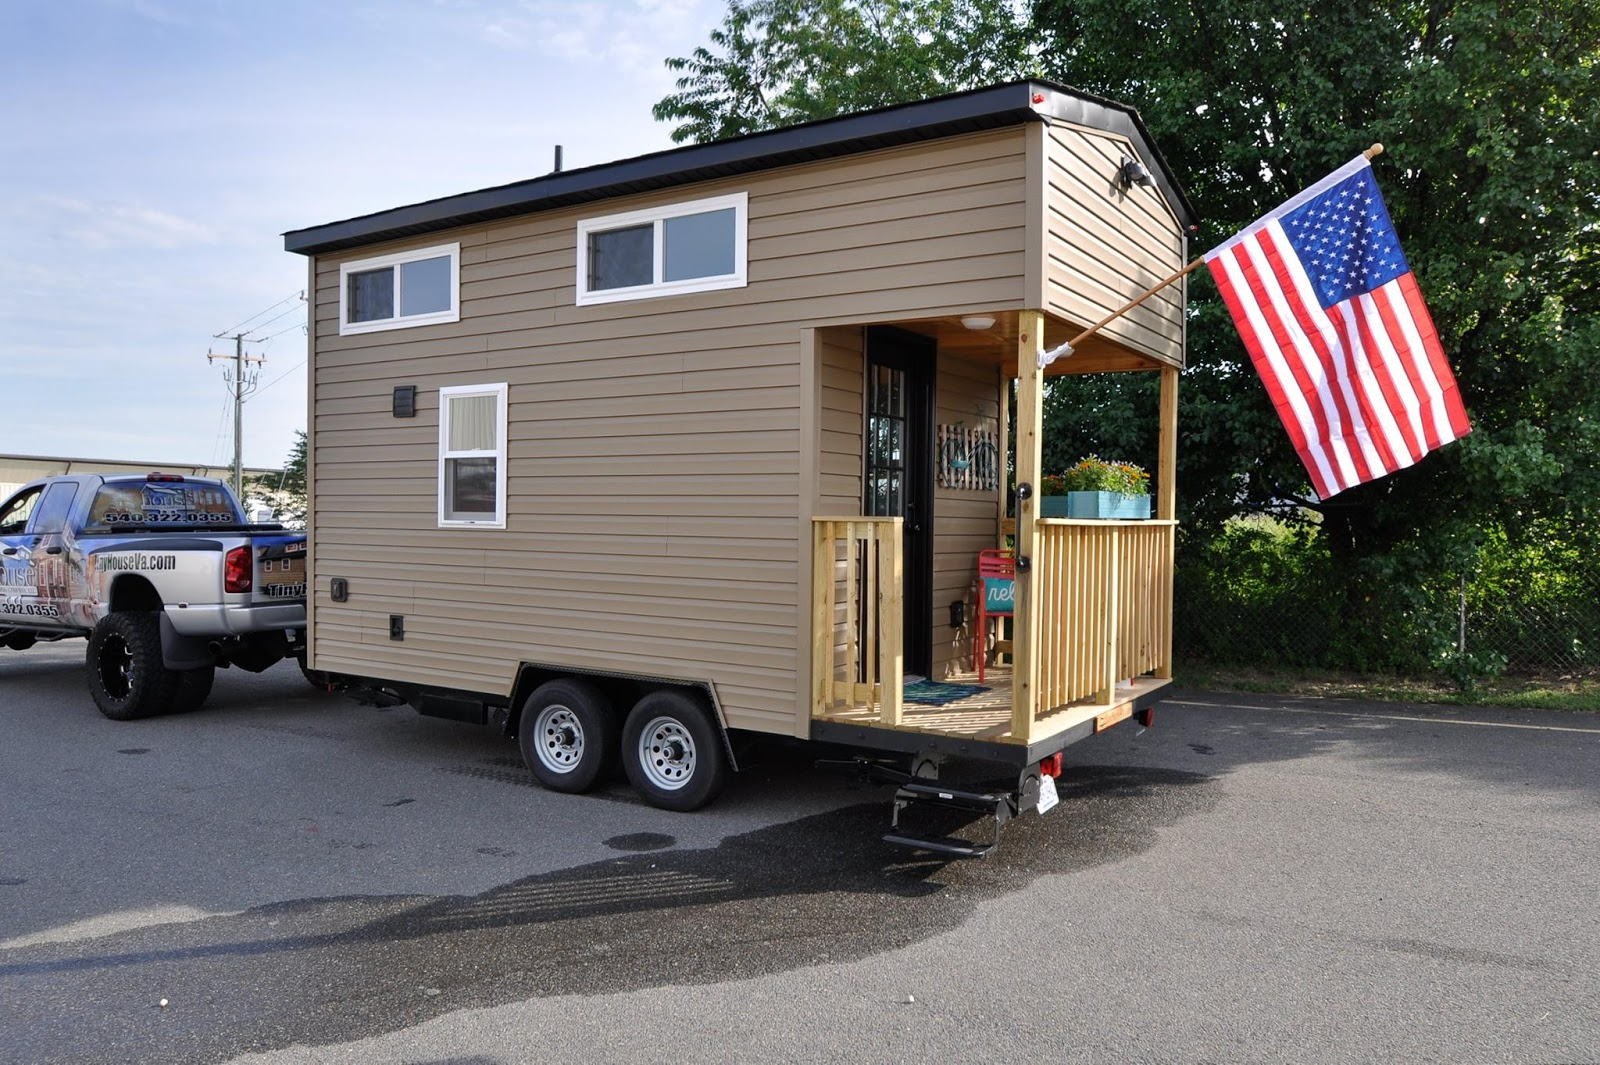 for more information on this tiny home model contact tiny house building company here - Tiny House Building 2